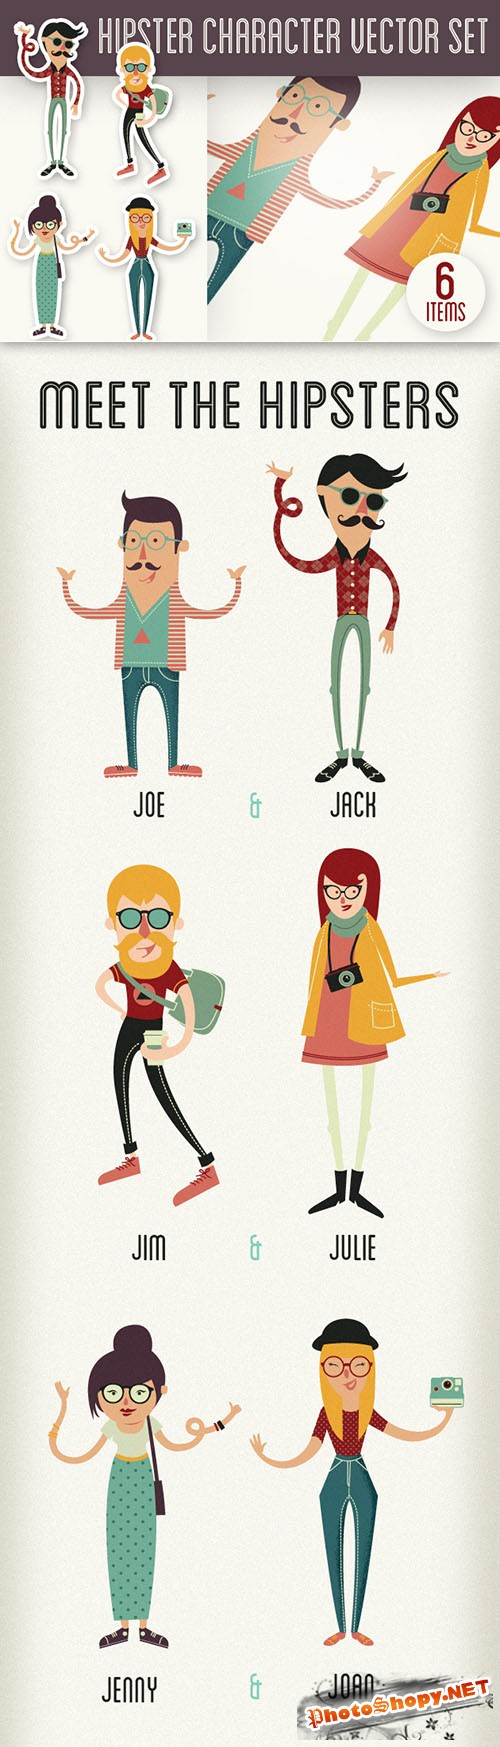 Designtnt - Hipster Vector Characters Set 1